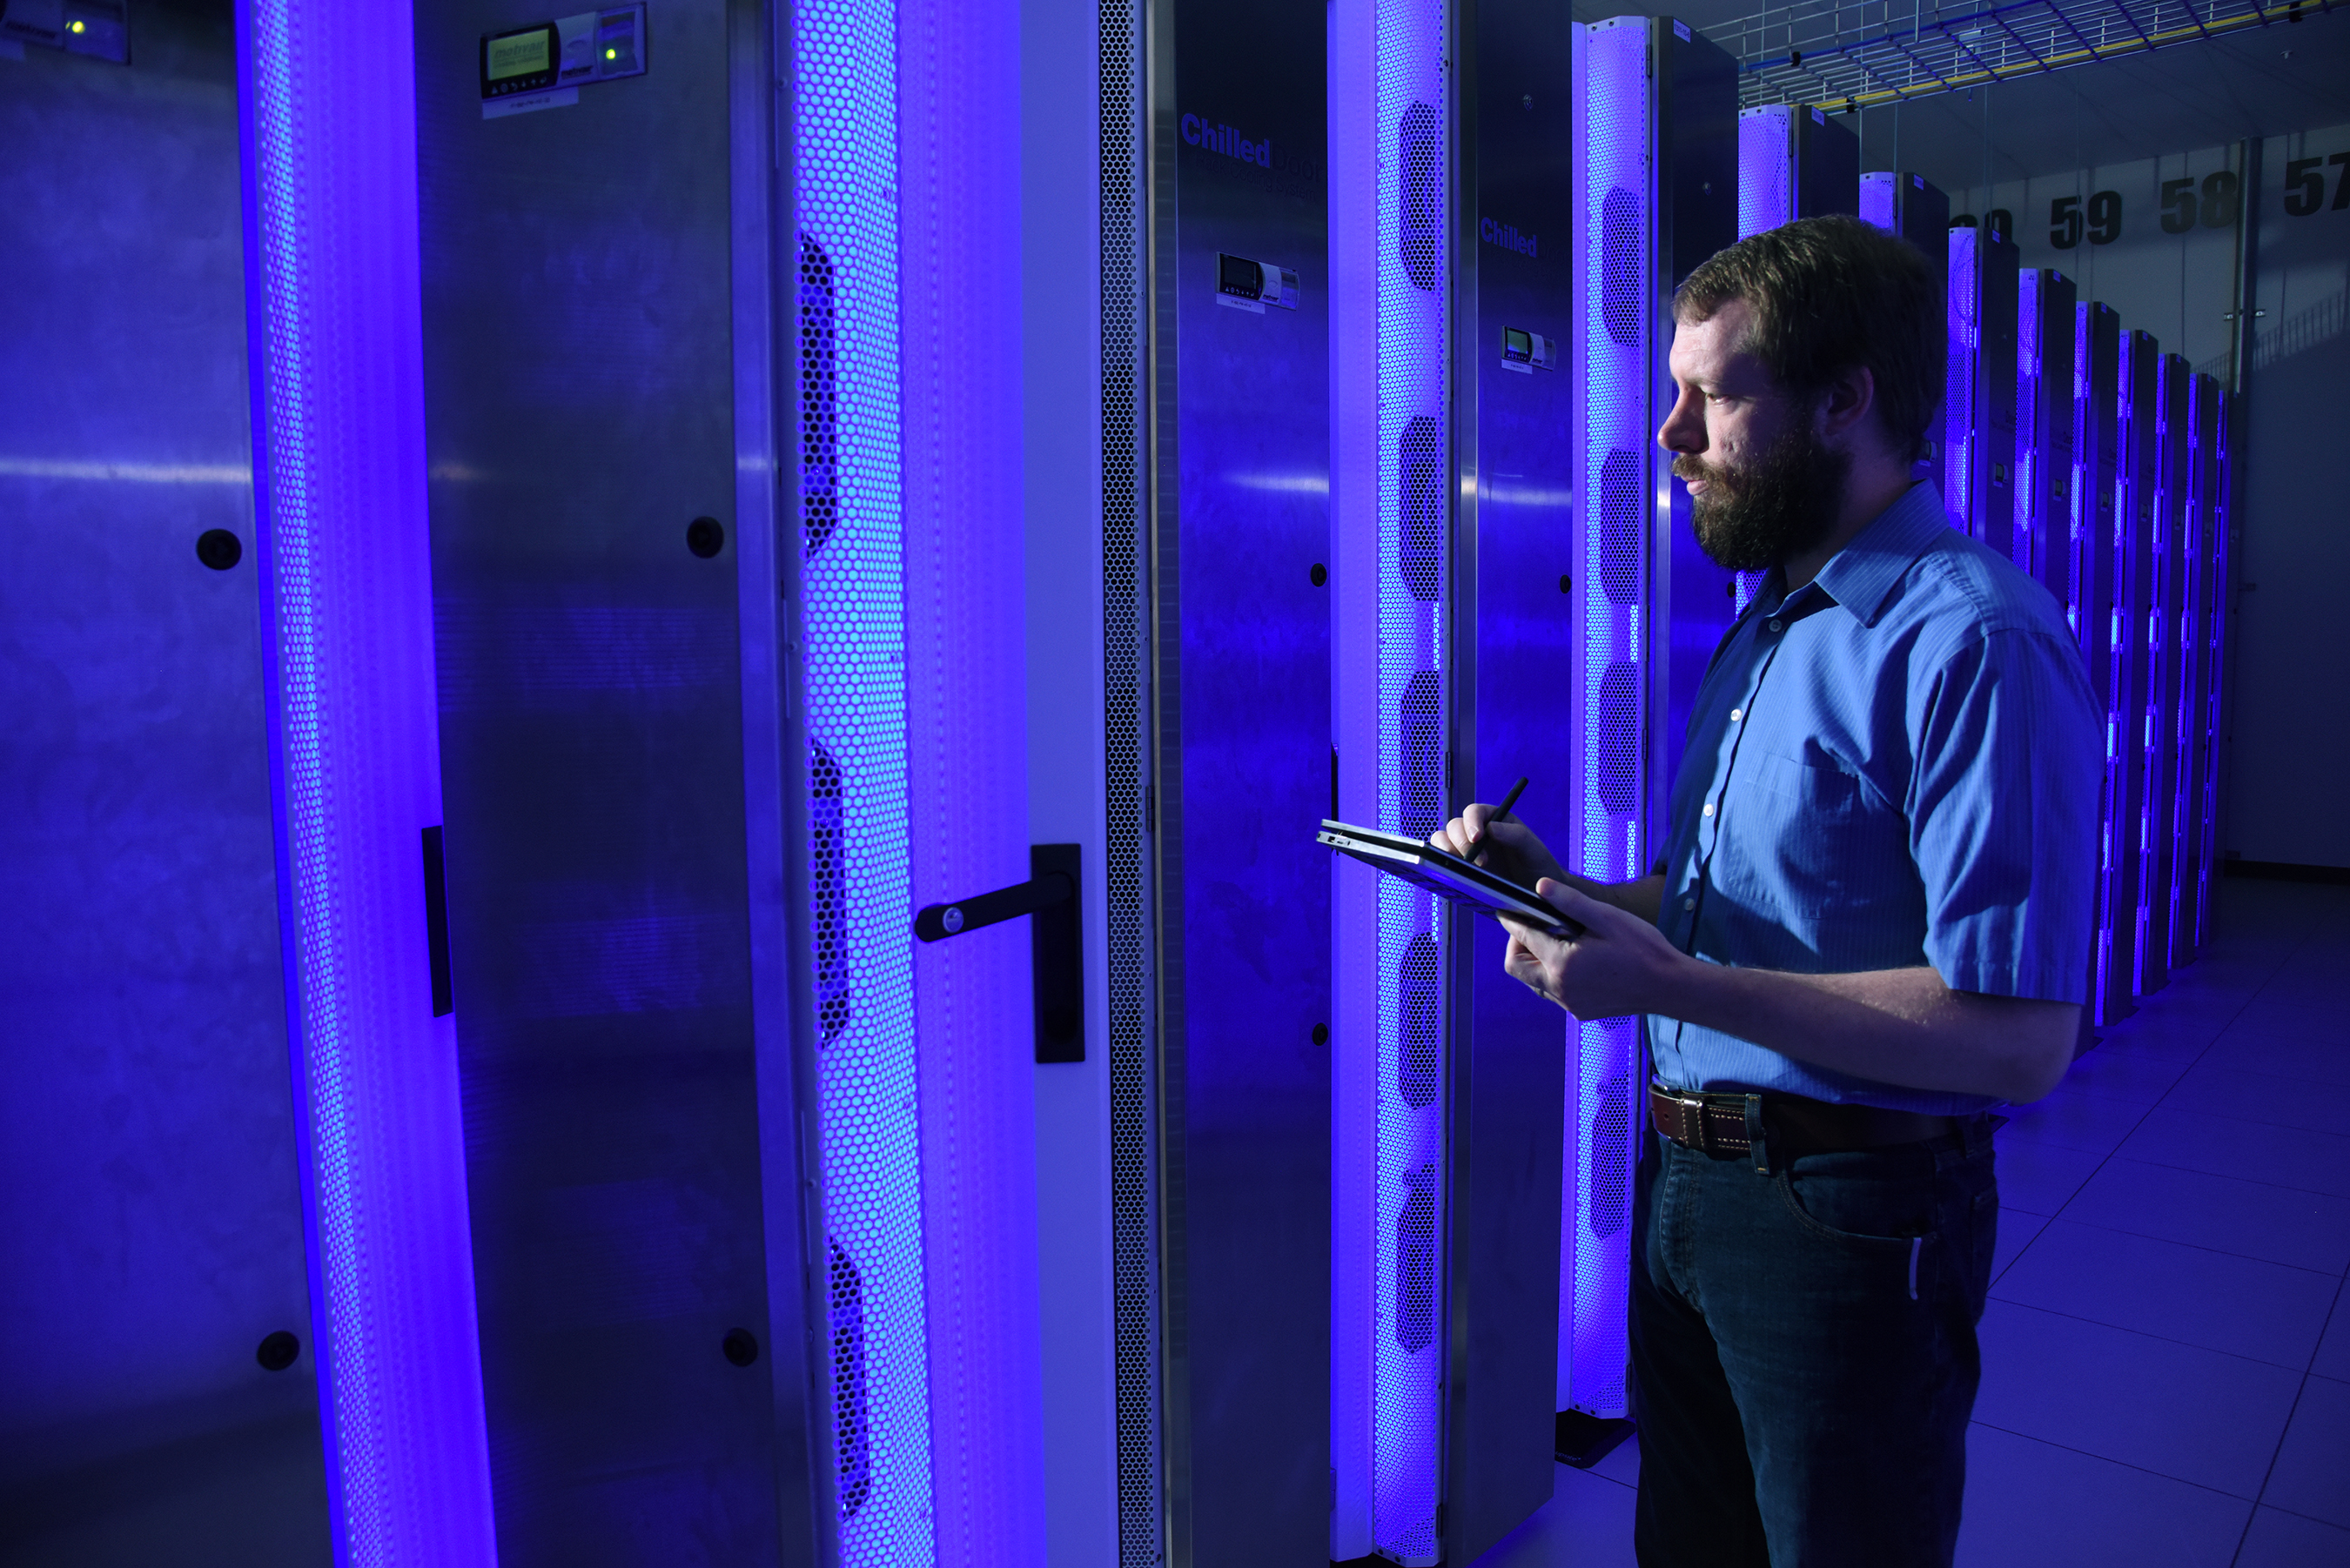 HPC Personnel Looking at Supercomputer